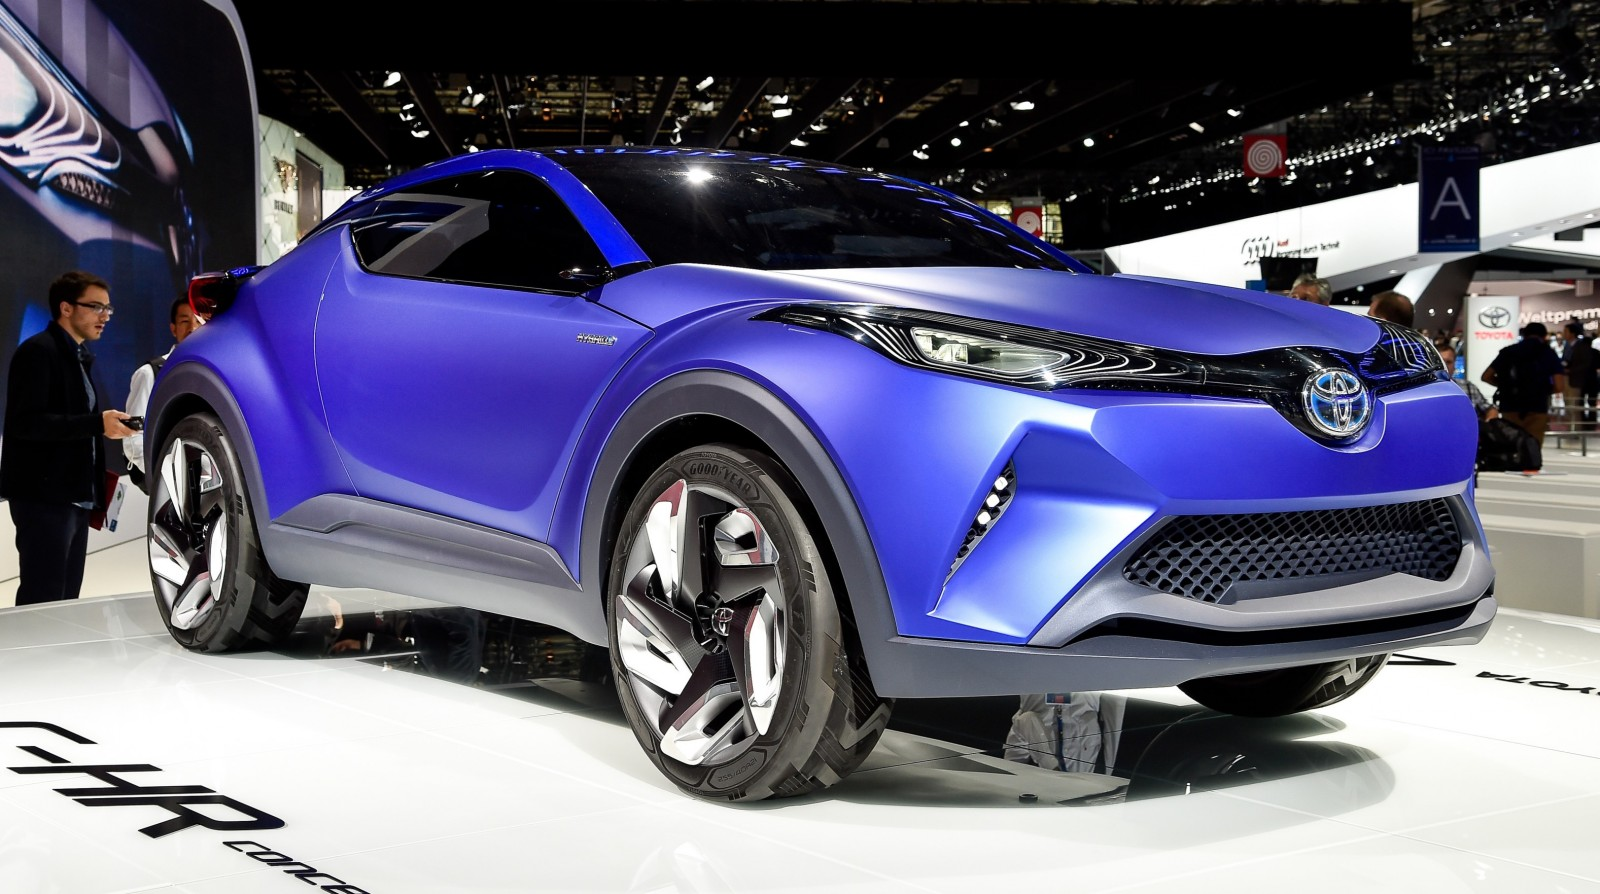 FUTURE-SPEC - Mazda MX-5 and CX-3 Headed to Showrooms as Toyota S-FR and Scion iD / Toyota C-HR